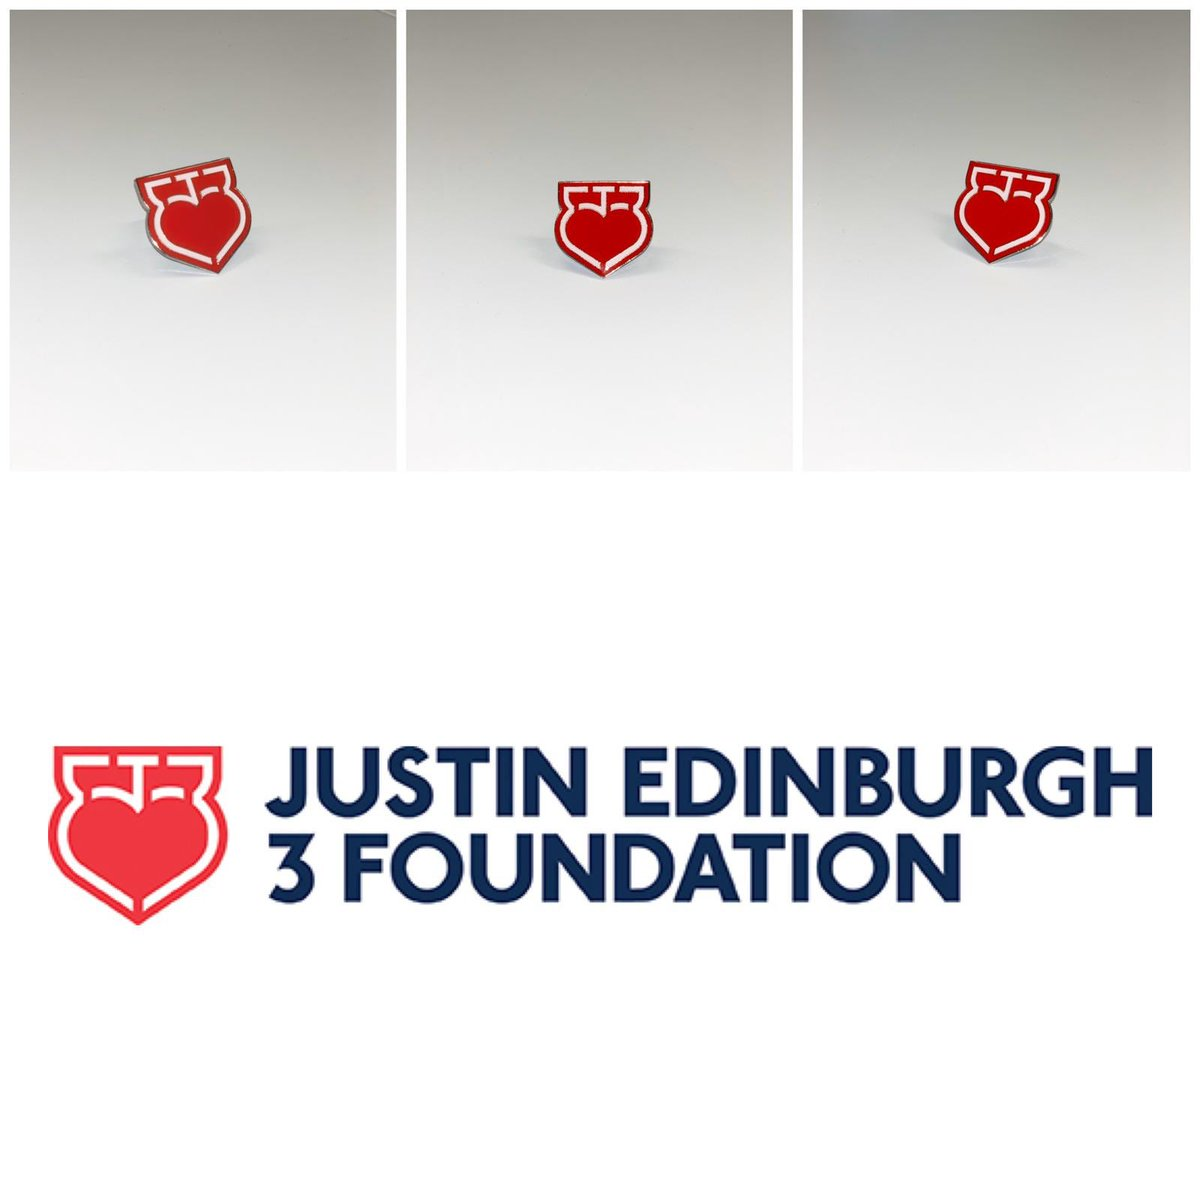 ❤️ Coming soon! Pick up your @JE3Foundation pin-badges on Saturday, December 14 at the Club Shop, Reception and main bar areas. Available for a suggested donation of £2. #LOFC #OnlyOneOrient